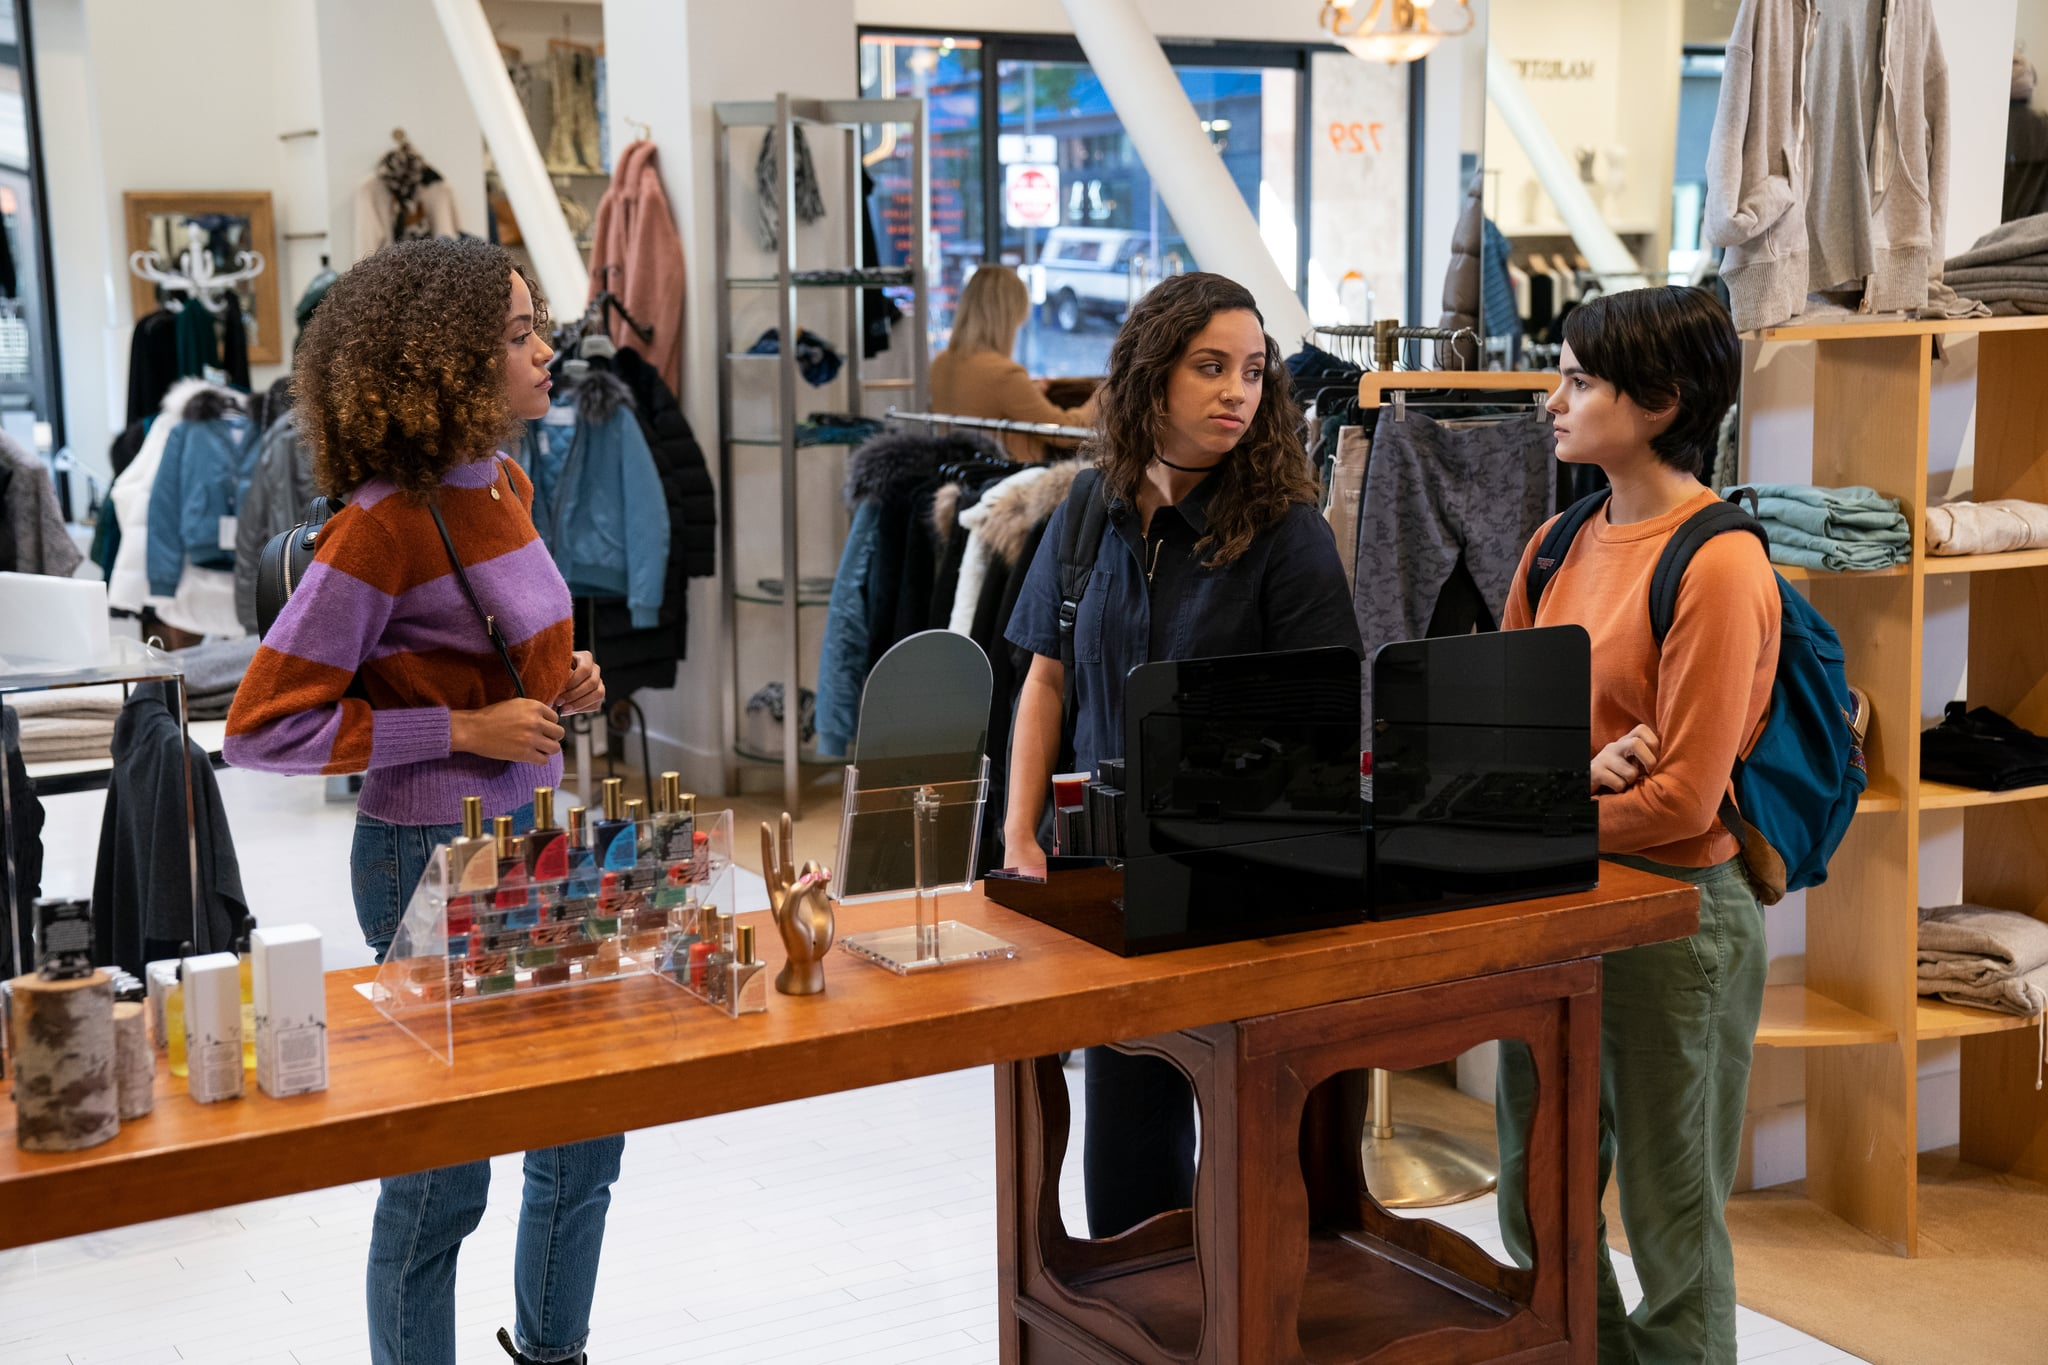 TRINKETS, from left:  Quintessa Swindell, Kiana Madeira, Brianna Hildebrand  in 'Mirrors', (Season 1, Episode 101, aired June 14, 2019), ph: Allyson Riggs / Netflix / Courtesy Everett Collection